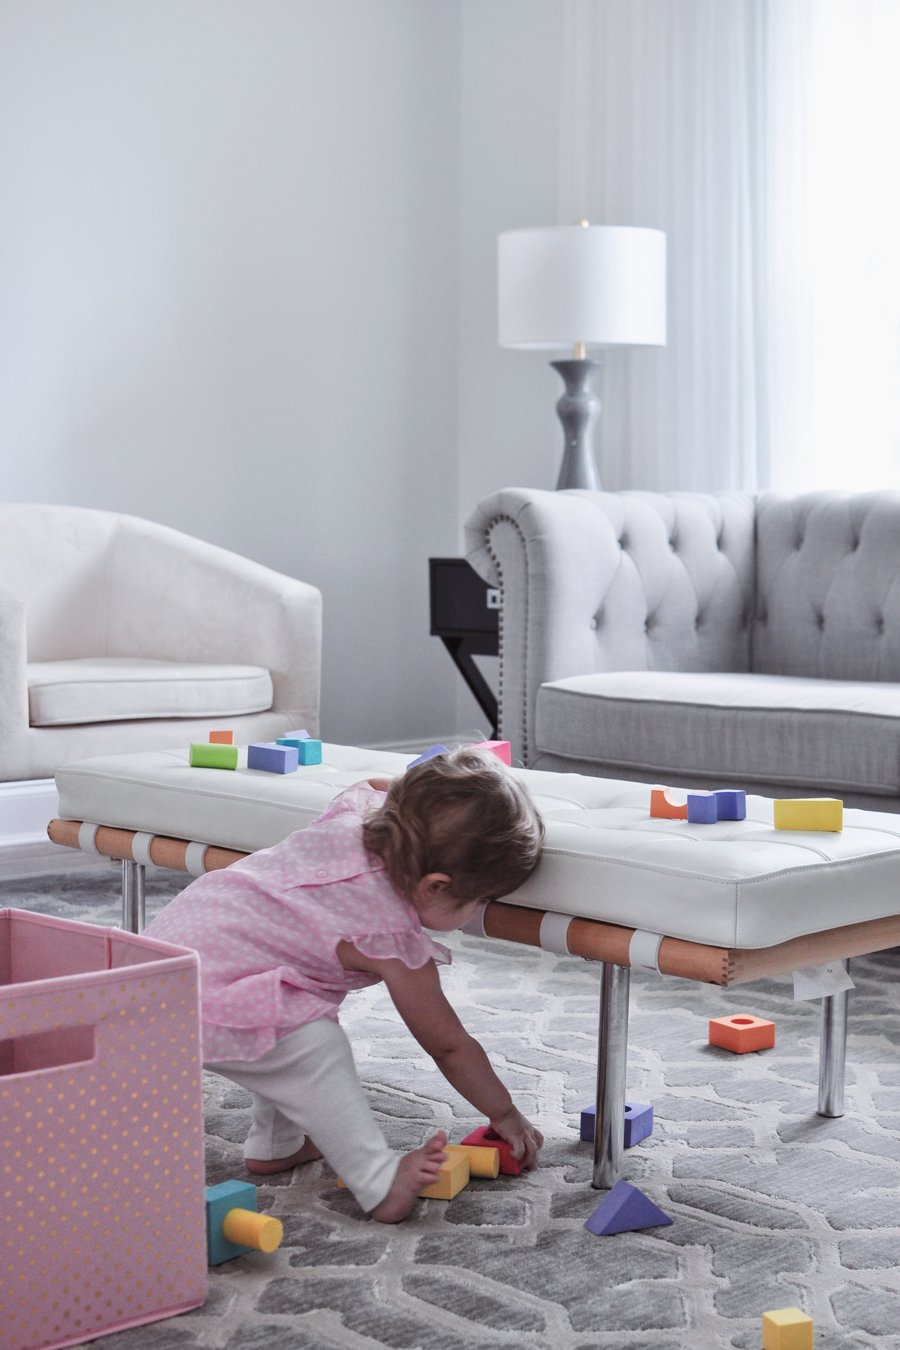 A Day in the Life of a Work-at-Home Mom